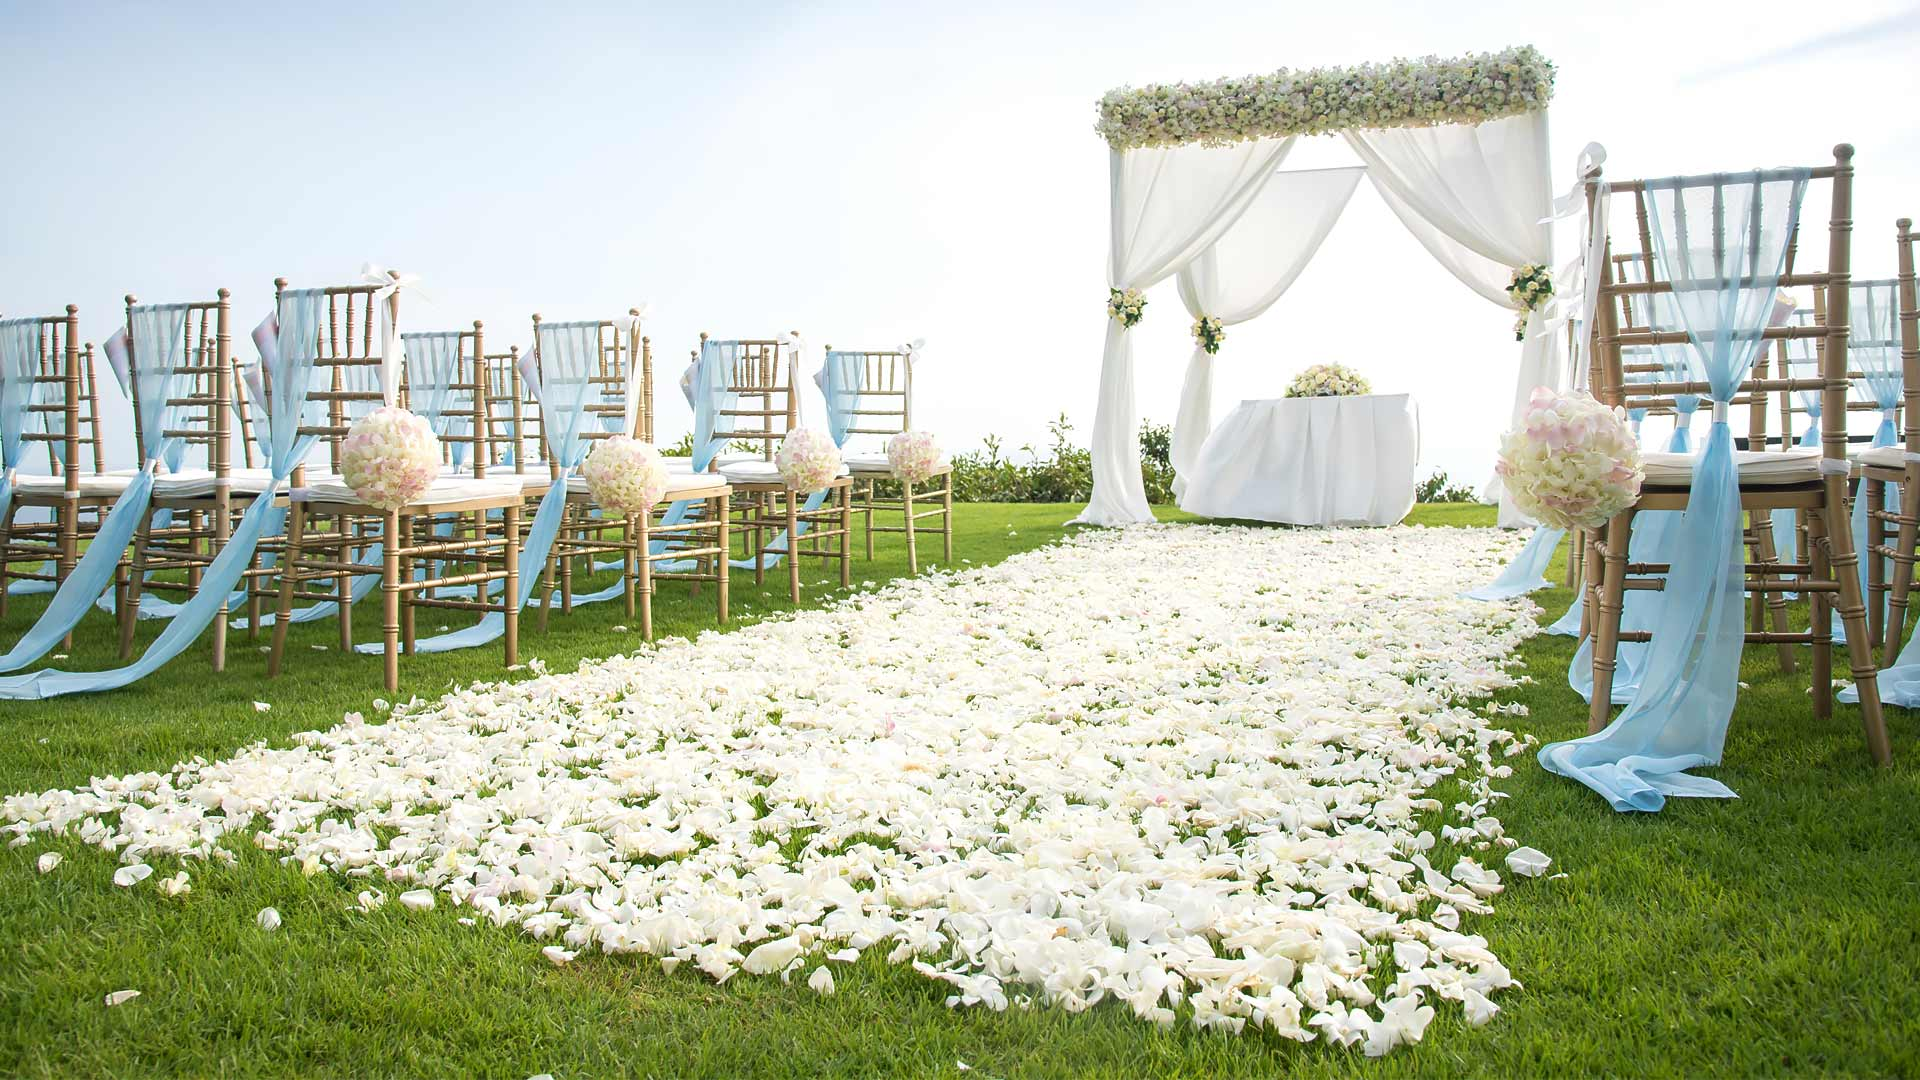 Outdoor Wedding Venues Near Me.Wedding Venues In Key West At Margaritaville Resort Marina